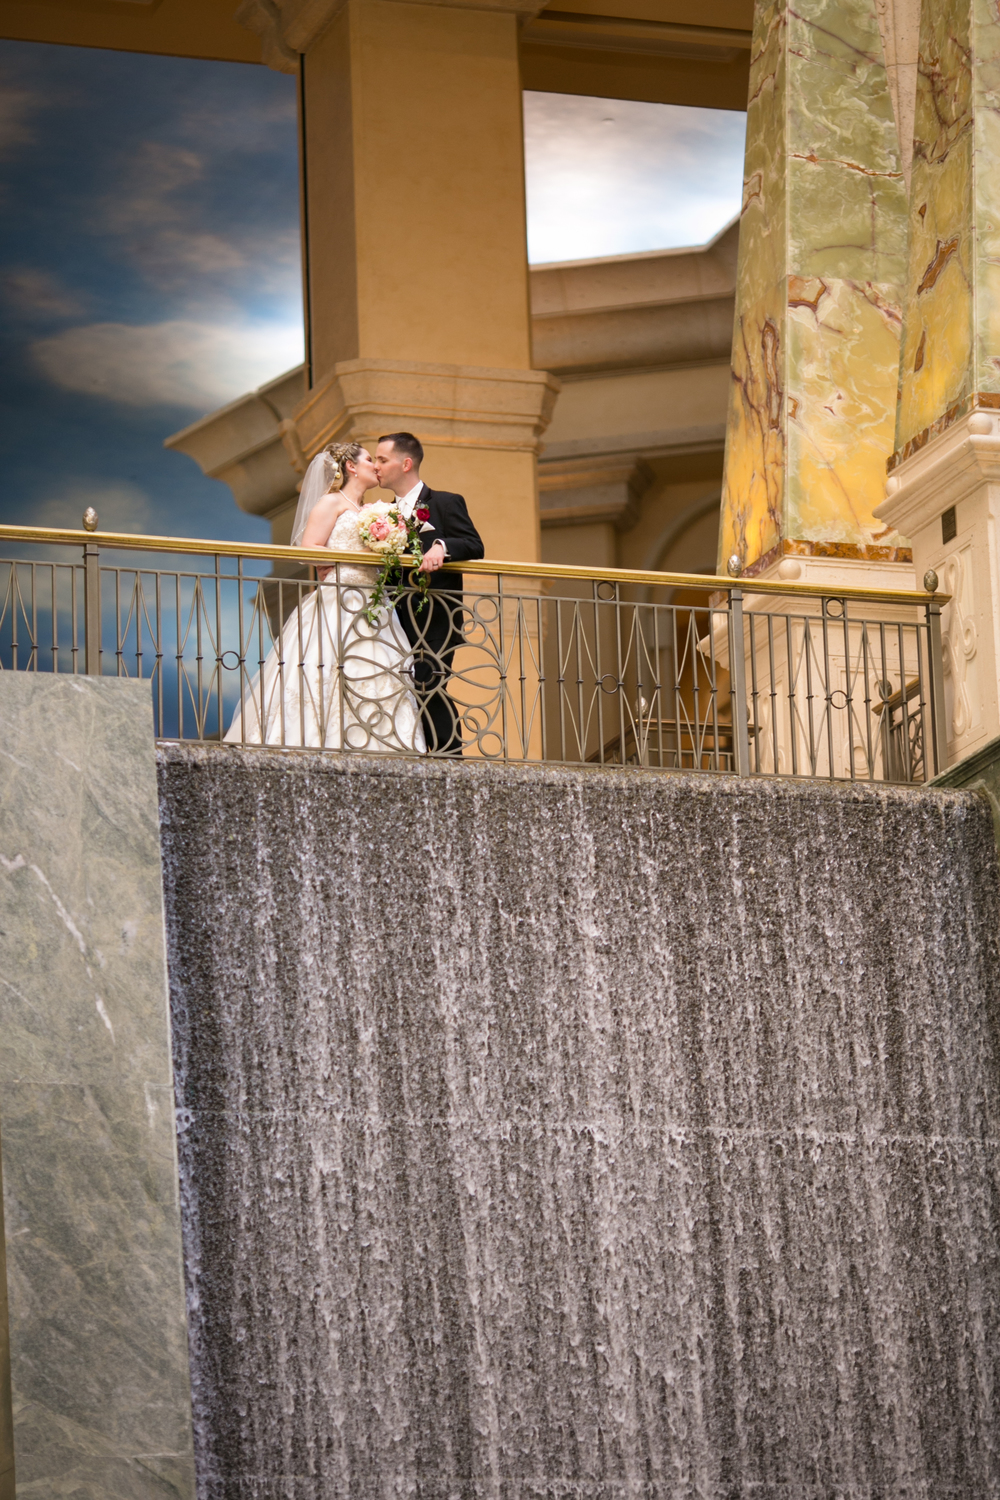 The balcony was perfect for a romantic wedding portrait. Las Vegas Wedding Planner Andrea Eppolito  |  Wedding at The Venetian Las Vegas  |  Florals and Decor by Naakiti Floral  |  Photos by Meg Ruth